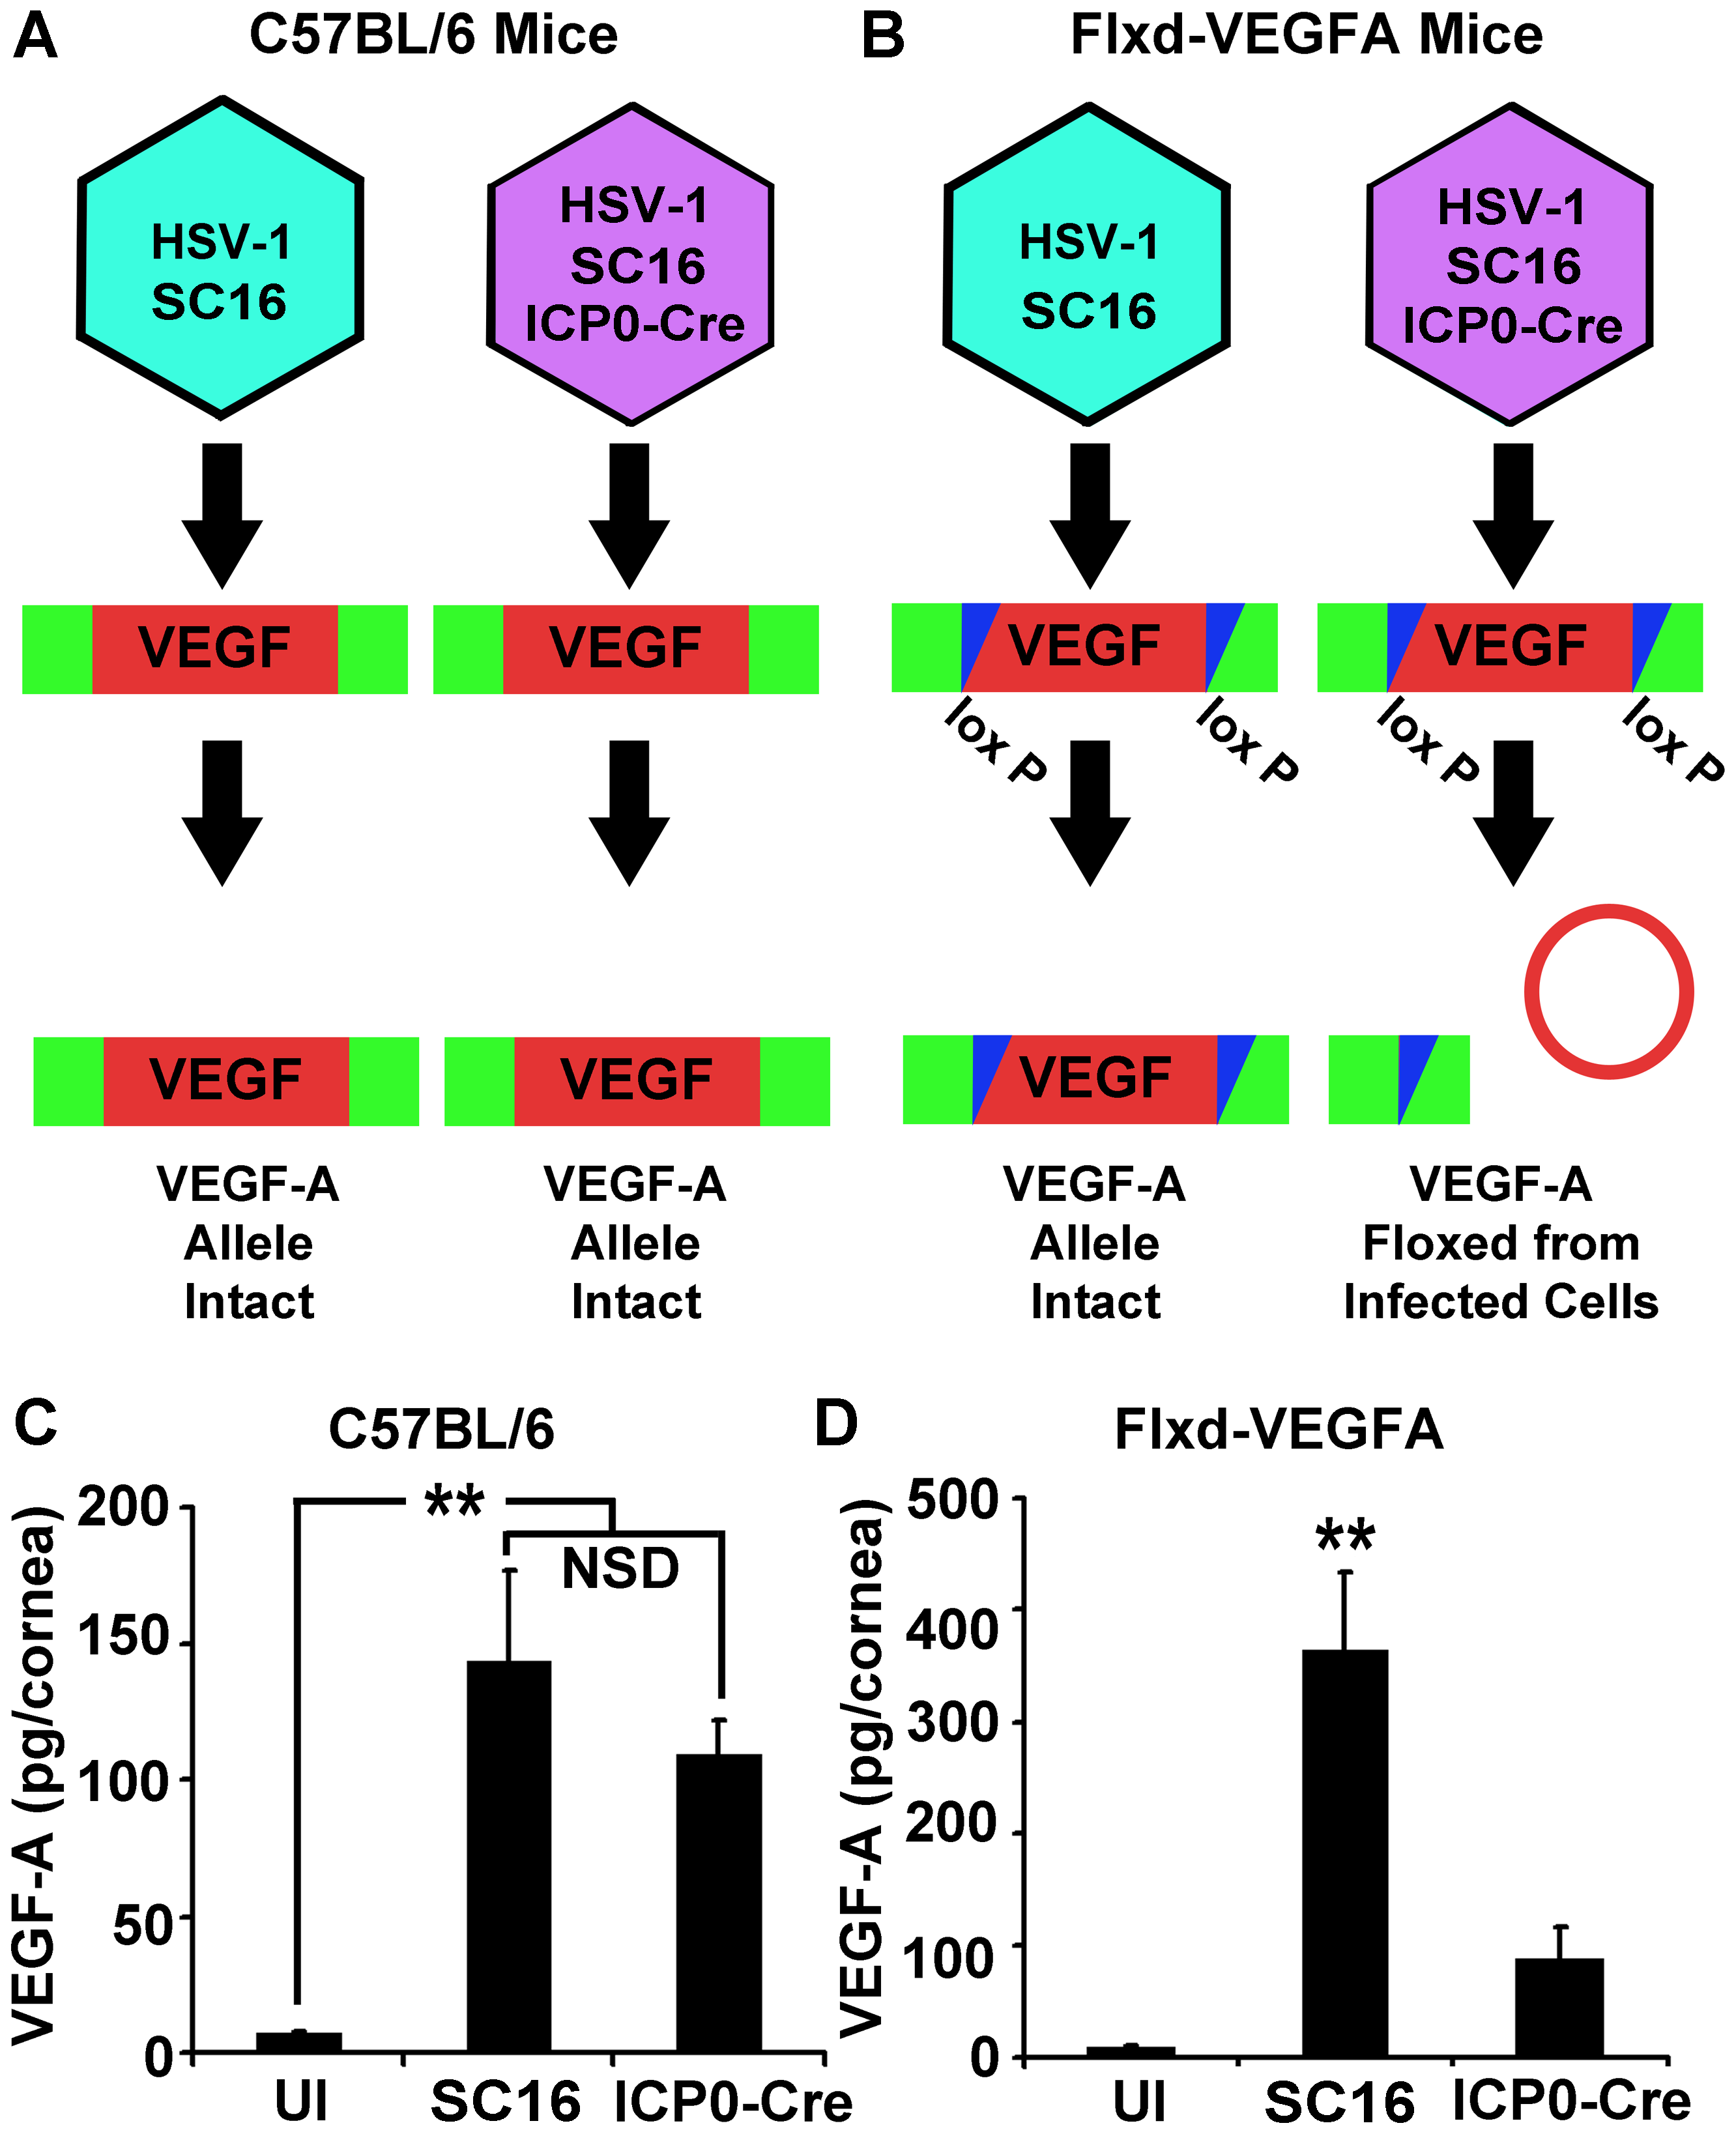 HSV-1 infected cells are the dominant source of VEGF-A during acute HSV-1 infection.